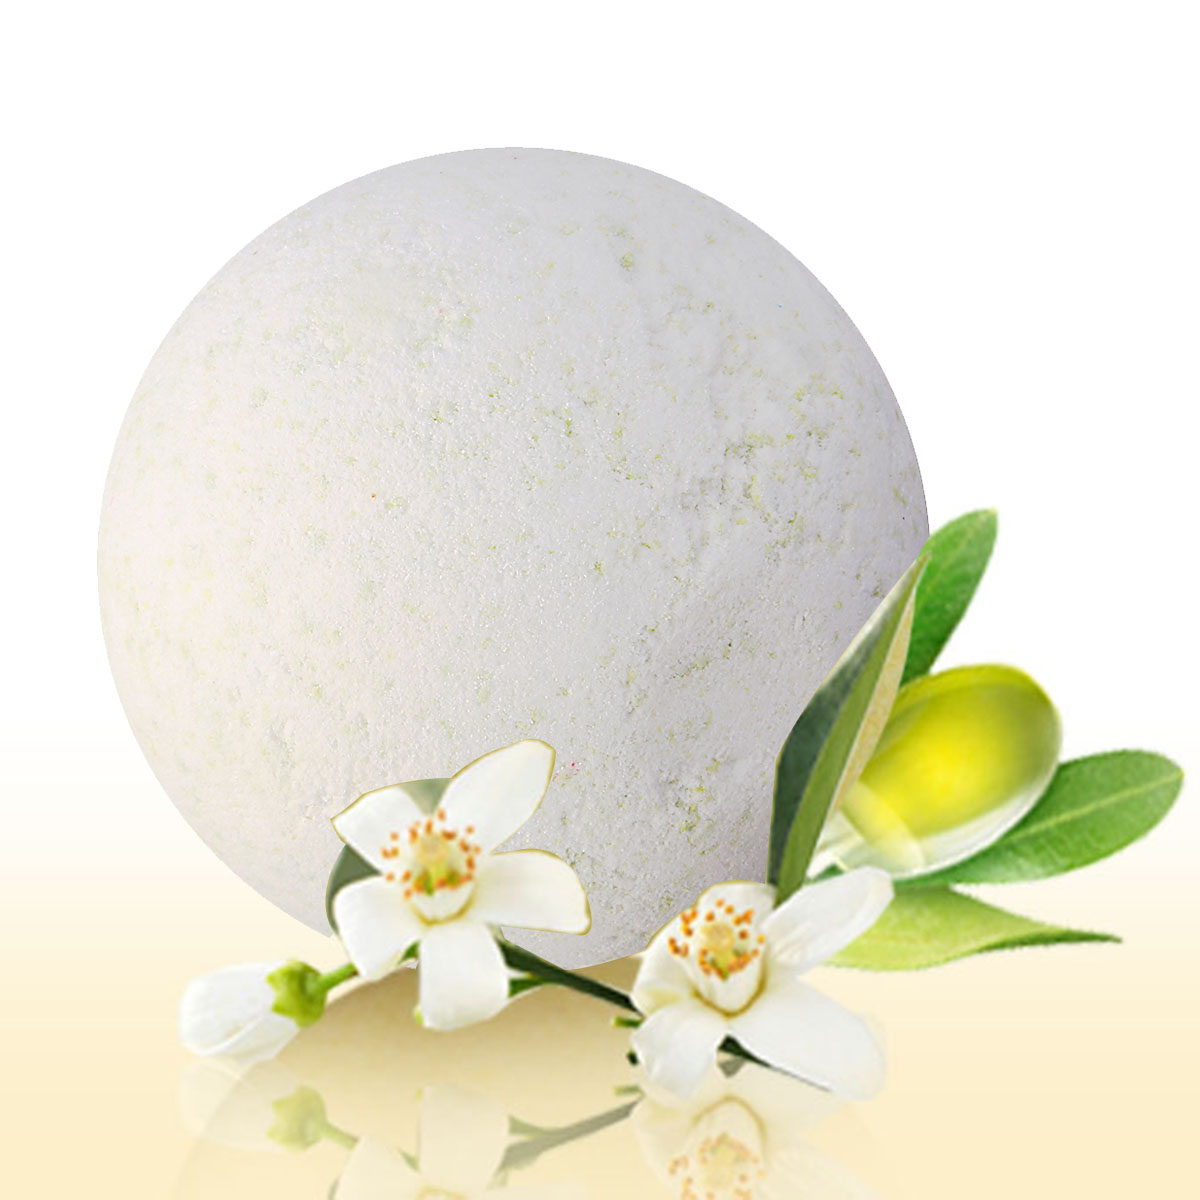 Mavogel Rose Bath Bombs Fizzers Salt Organic Natural Essential Oils For Moisturizing Dry Skin